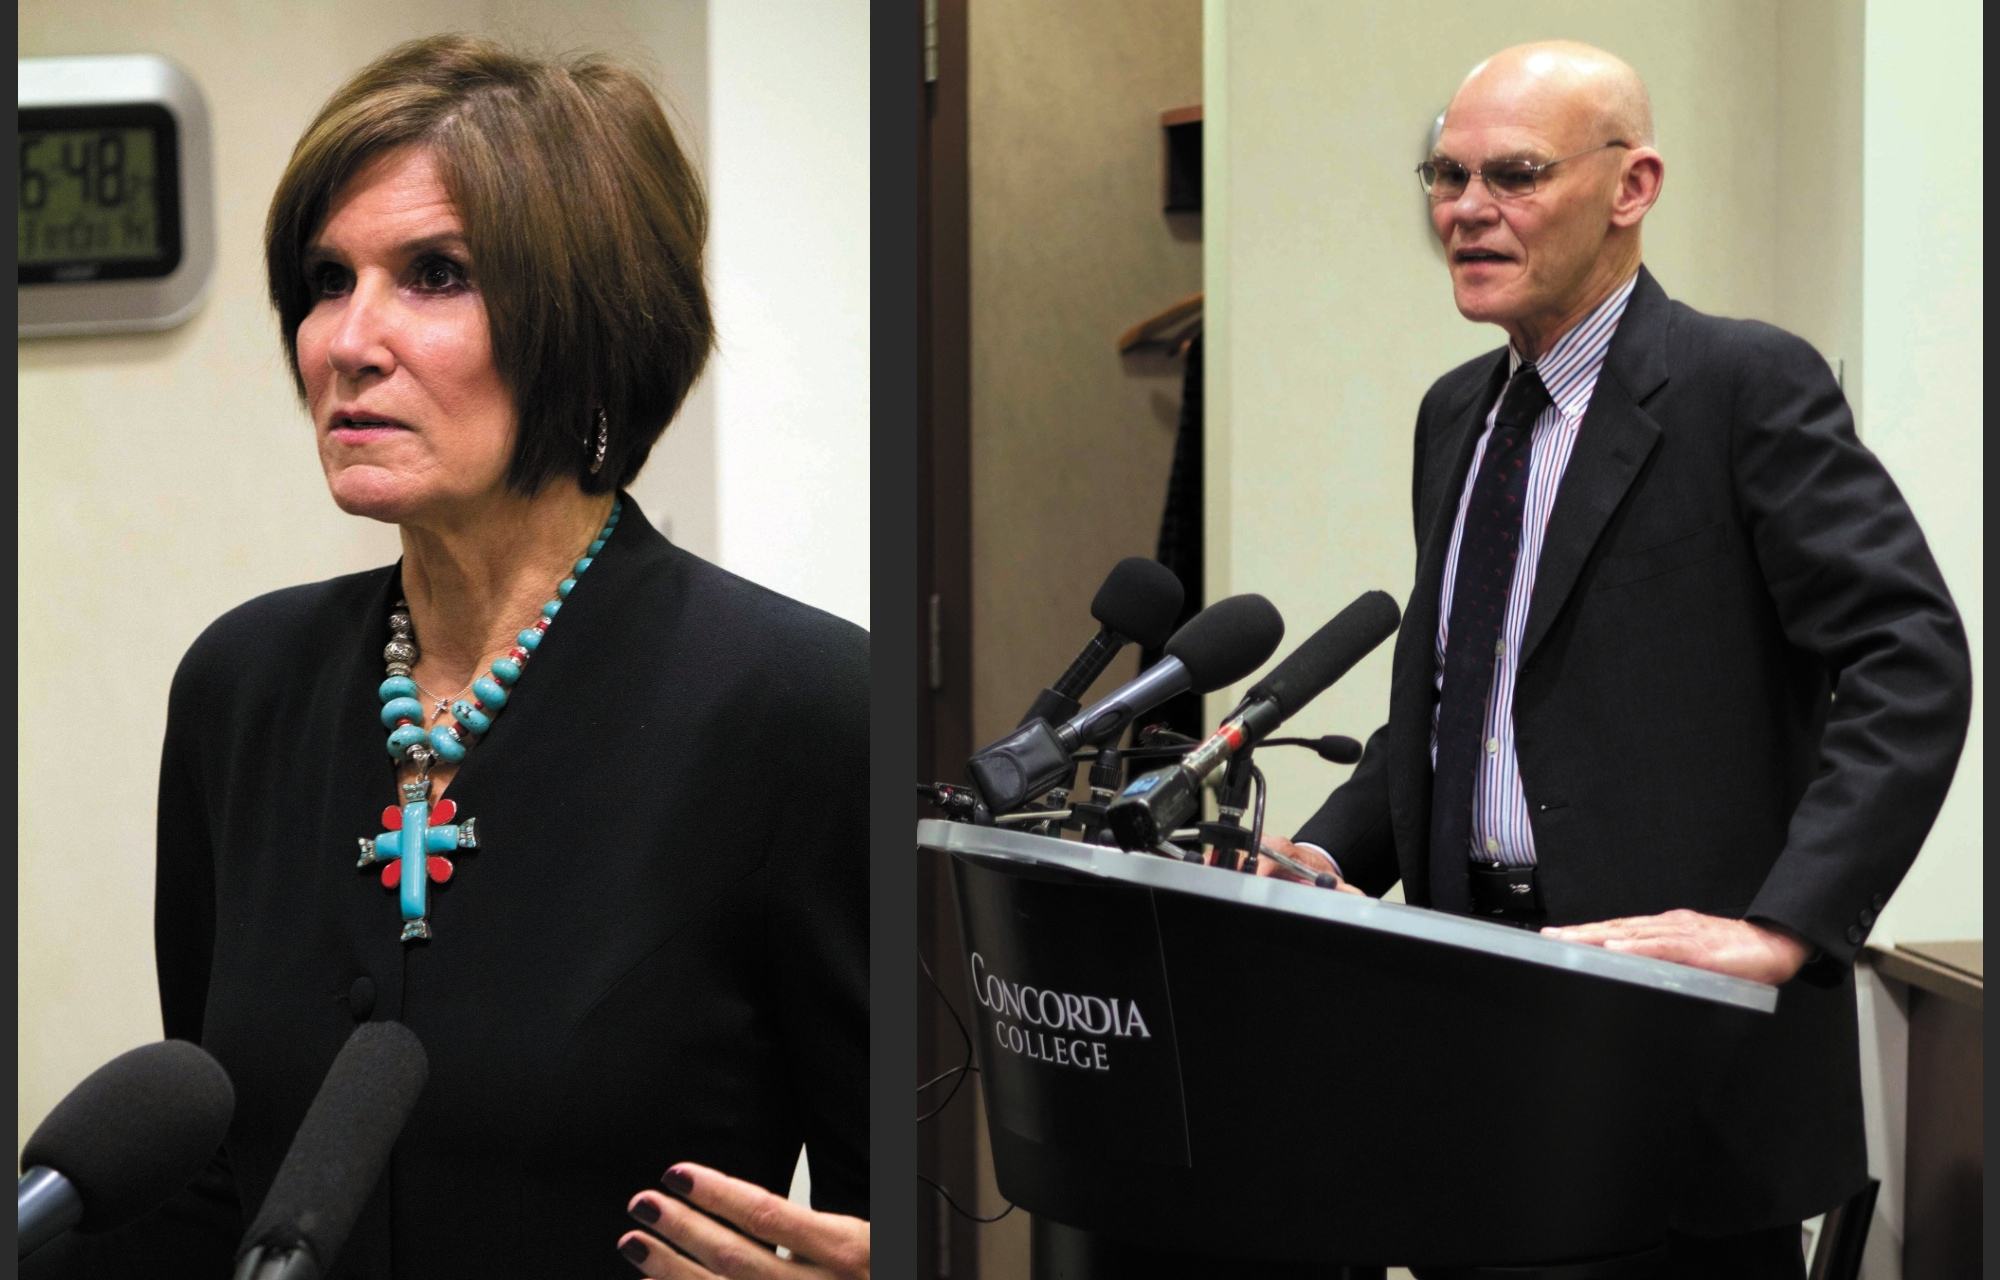 Photos by Evan Balko. Politically polarized couple Mary Matalin and James Carville debate current events in front of a full house on Oct. 31. The pair pride themselves in disagreeing about politics yet maintaining a healthy marriage.